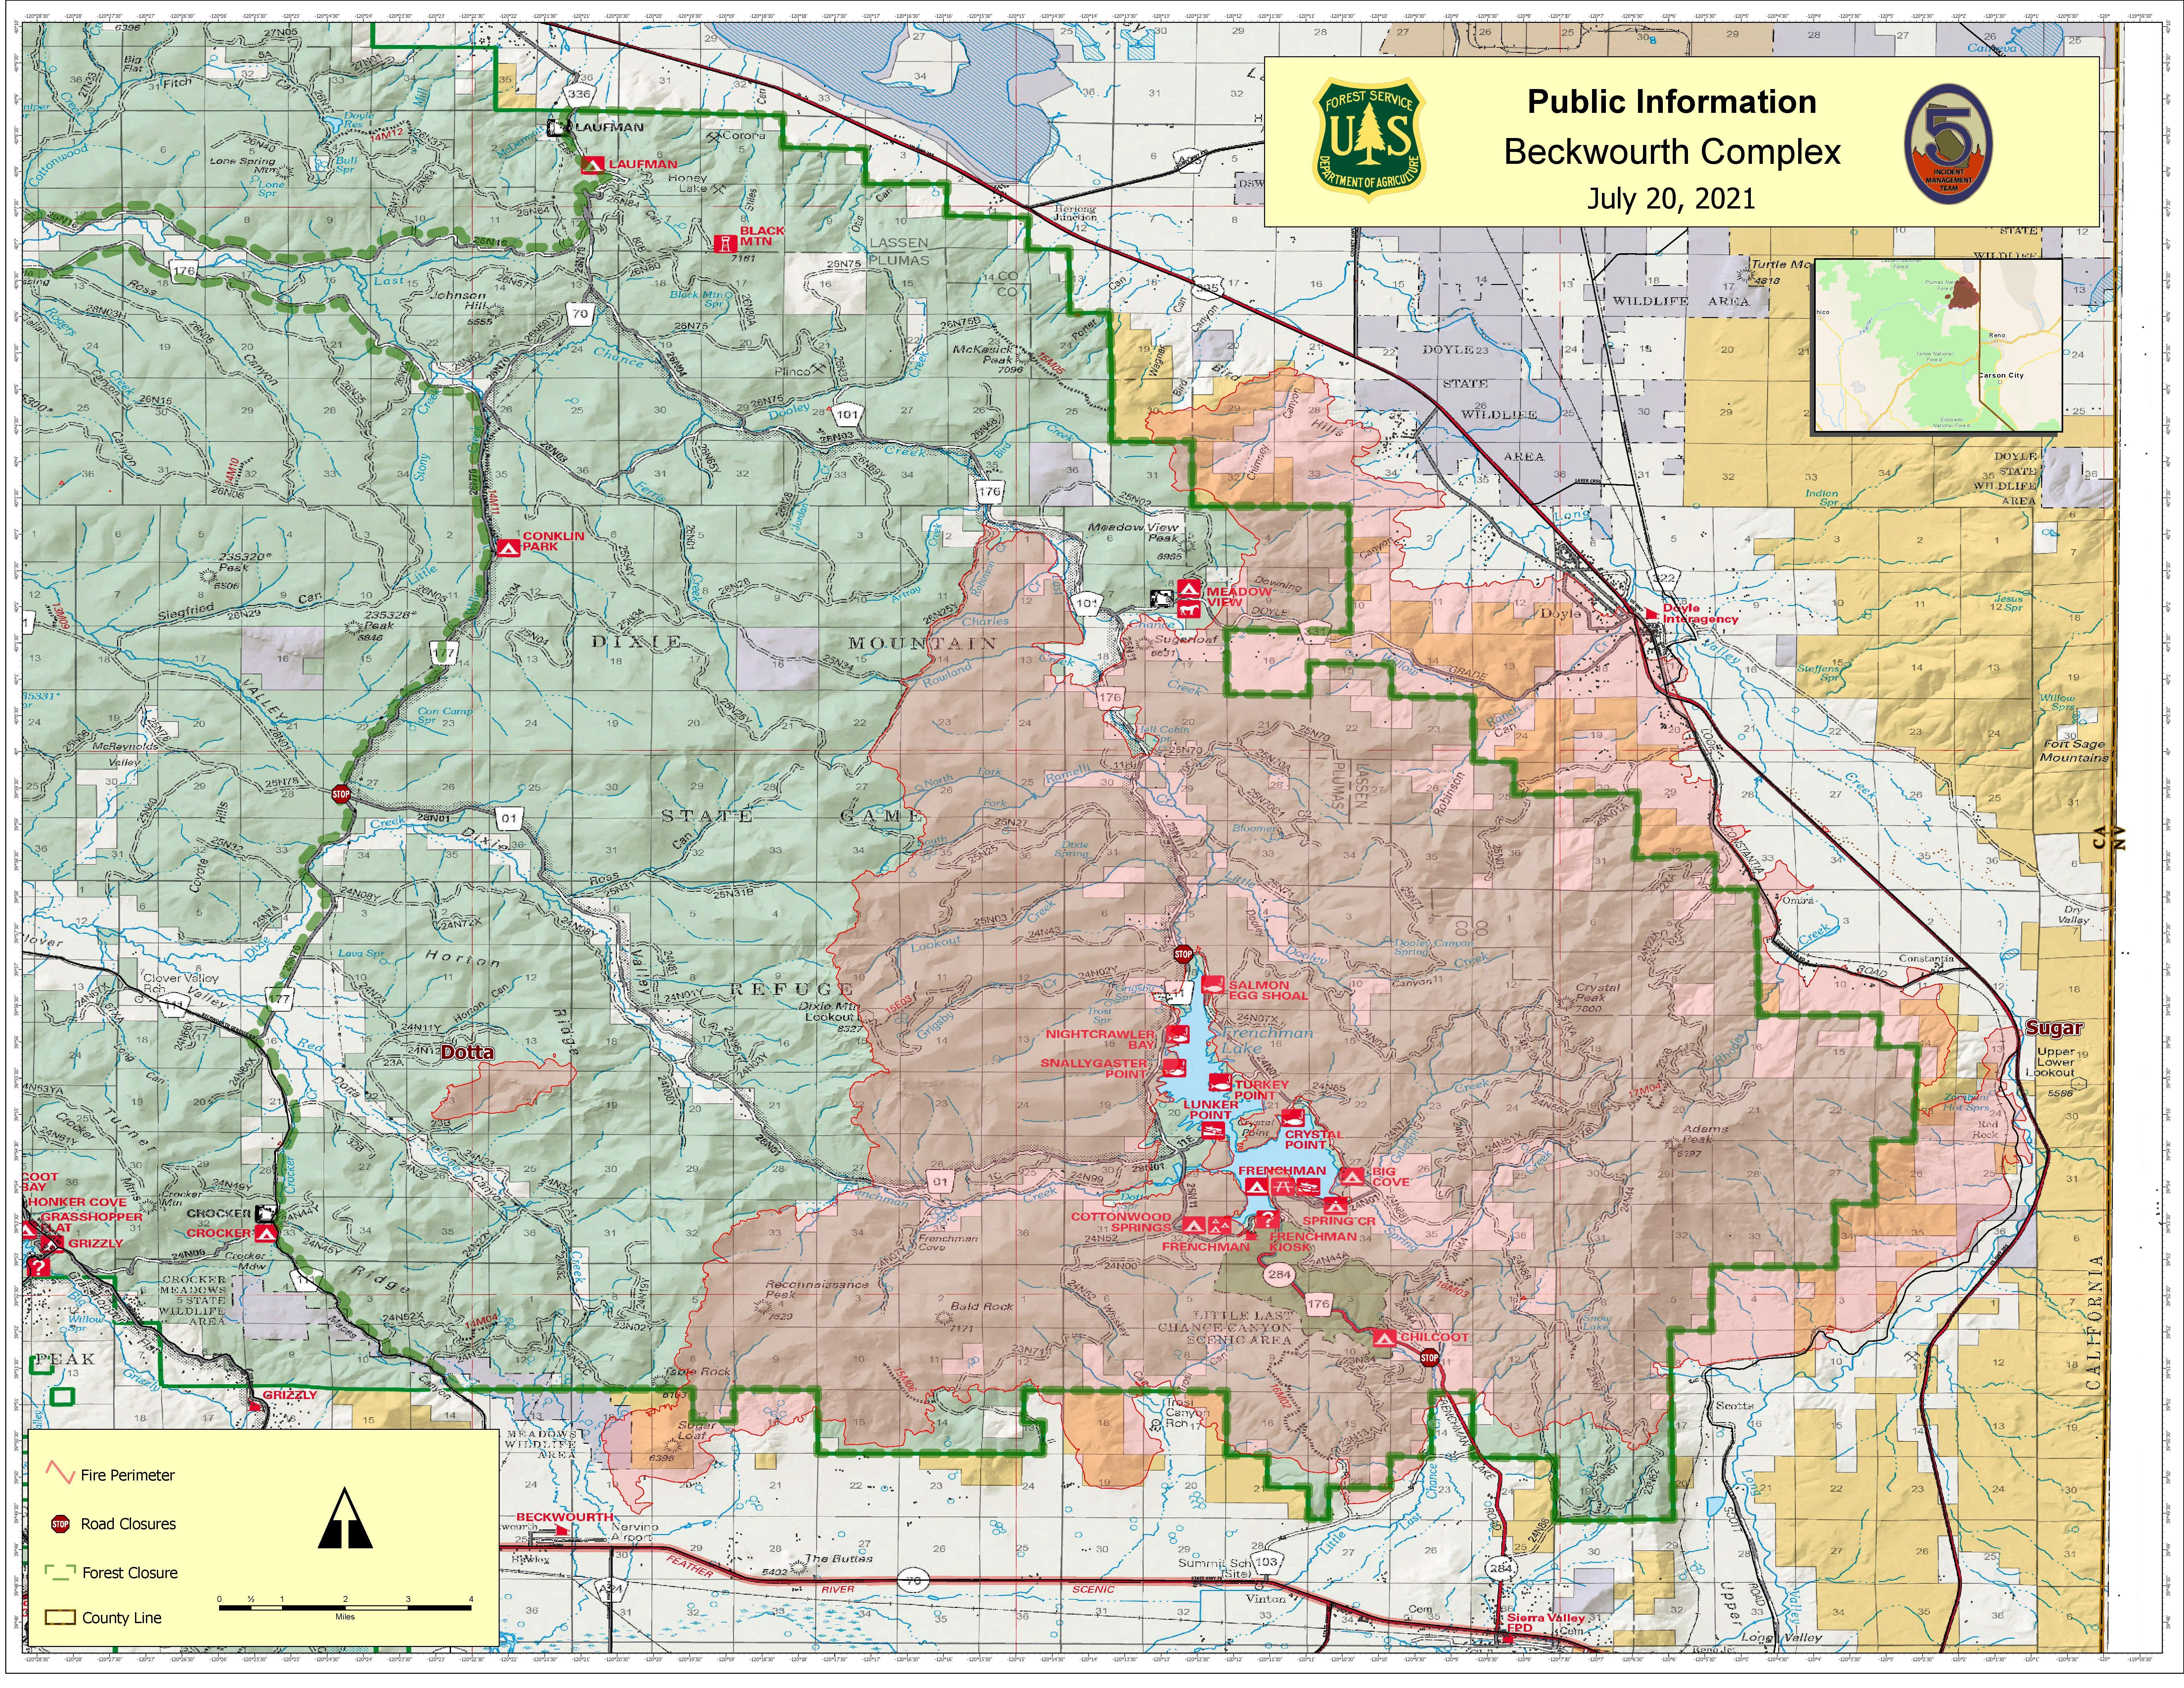 This map shows the fire perimeter of the Beckwourth Complex on July 20, 2021